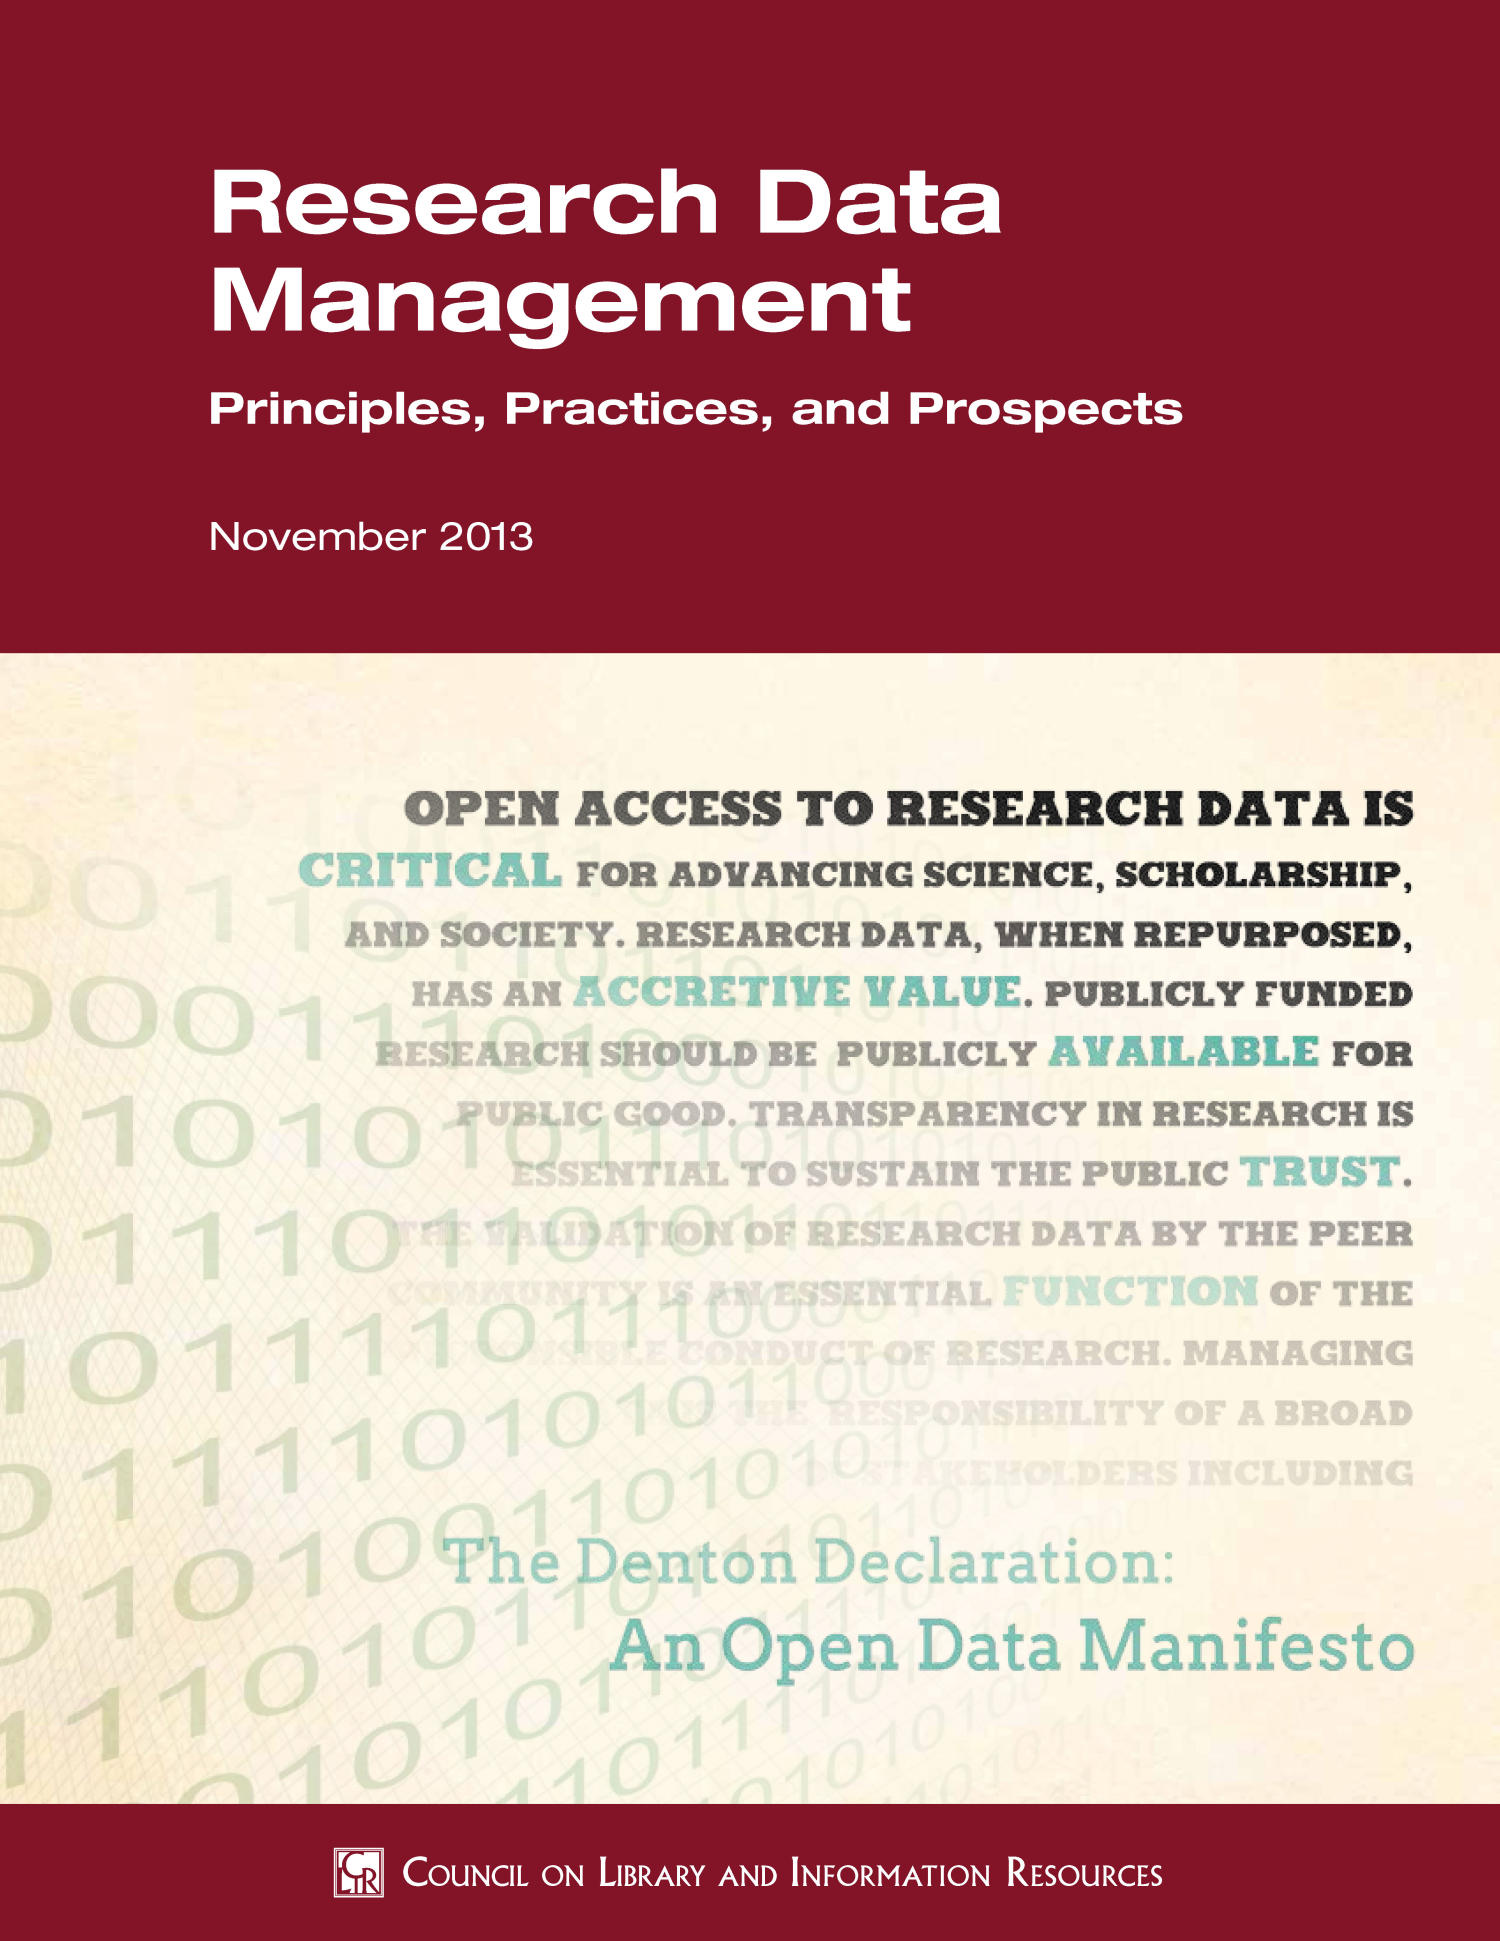 Research Data Management Principles, Practices, and Prospects                                                                                                      Title Page